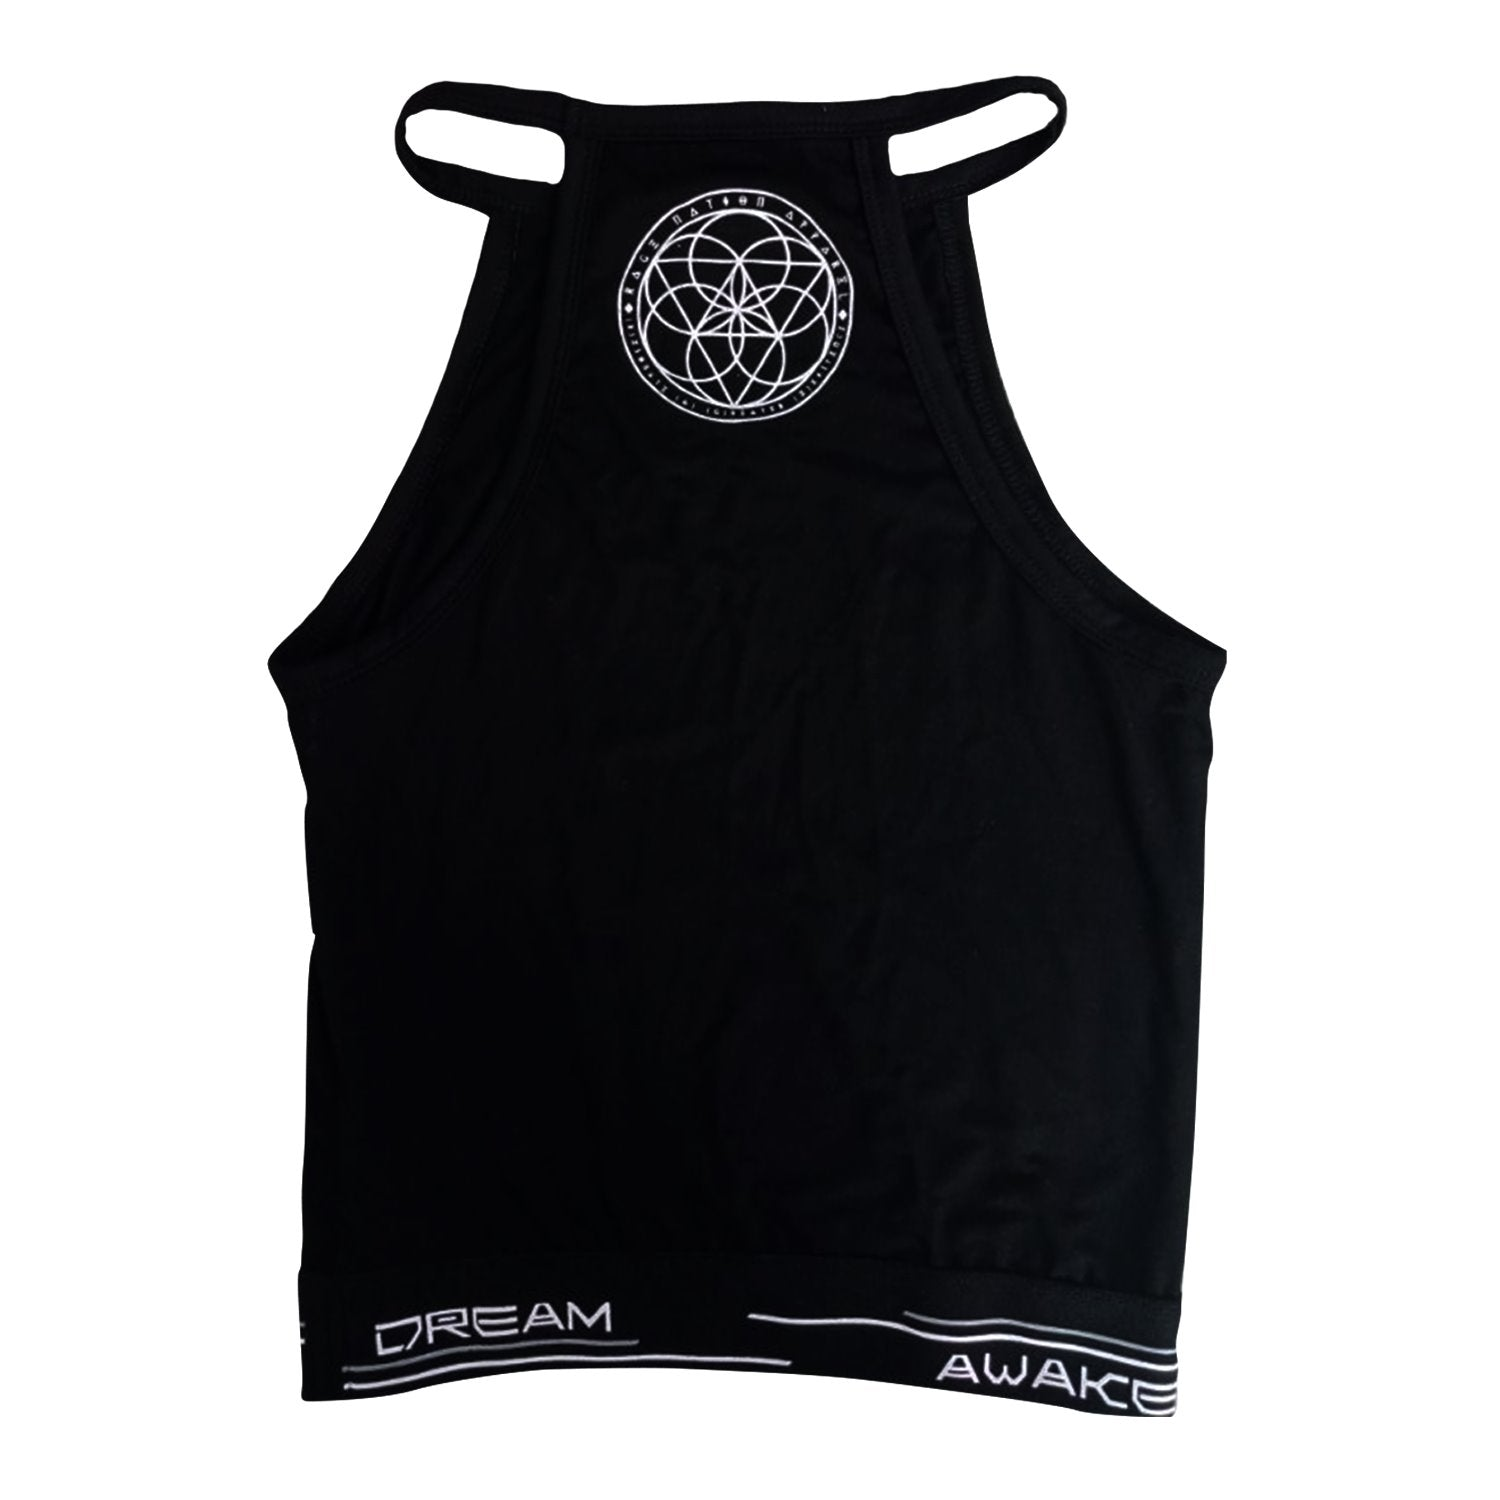 DREAM AWAKE • Banded Crop Top Apparel